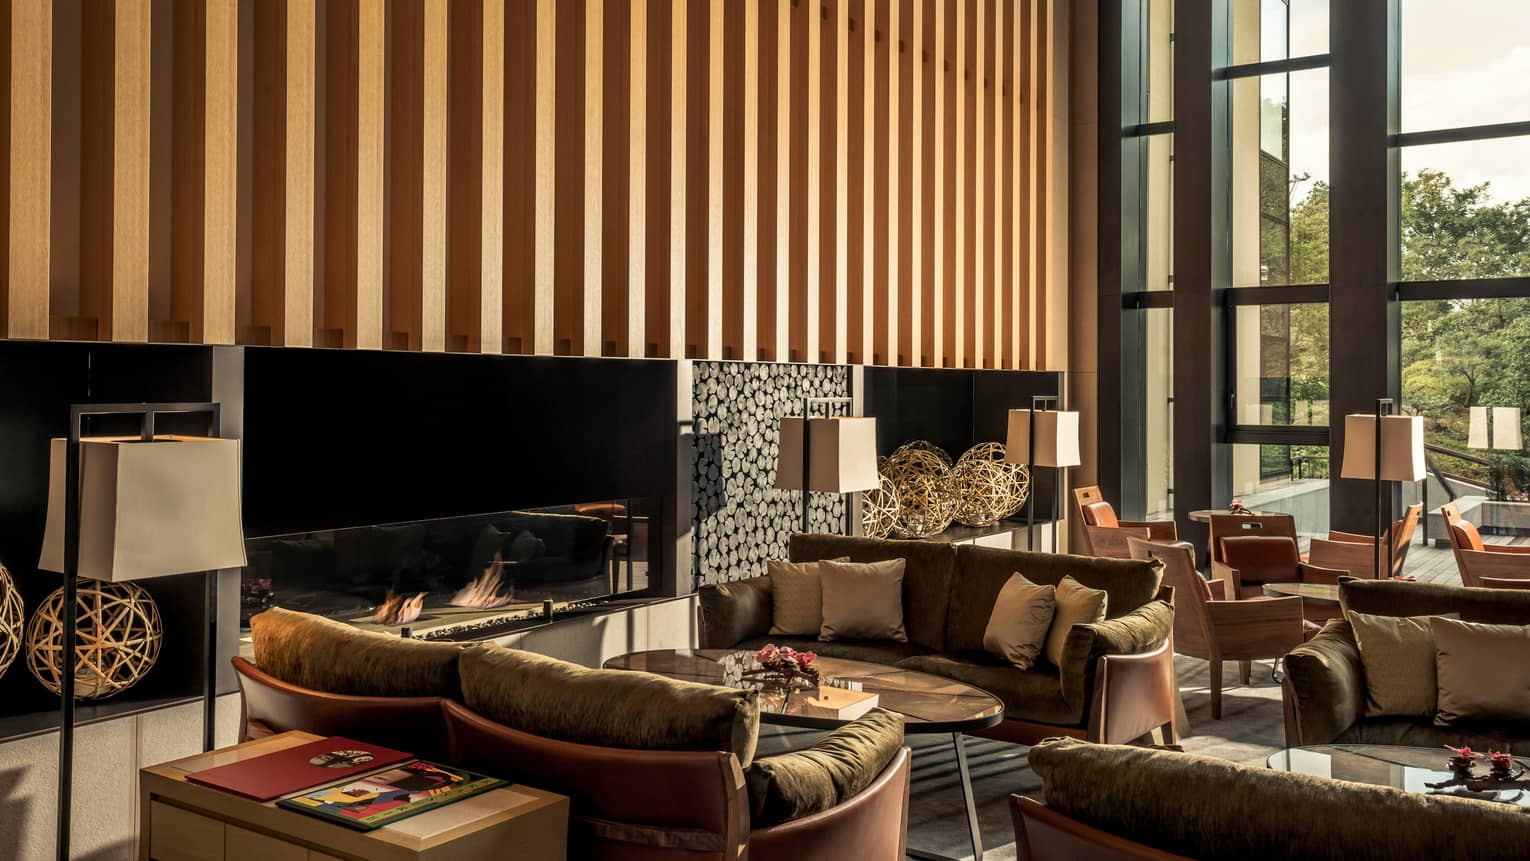 Brasserie brown loveseats, tables by modern fireplace under wood striped wall